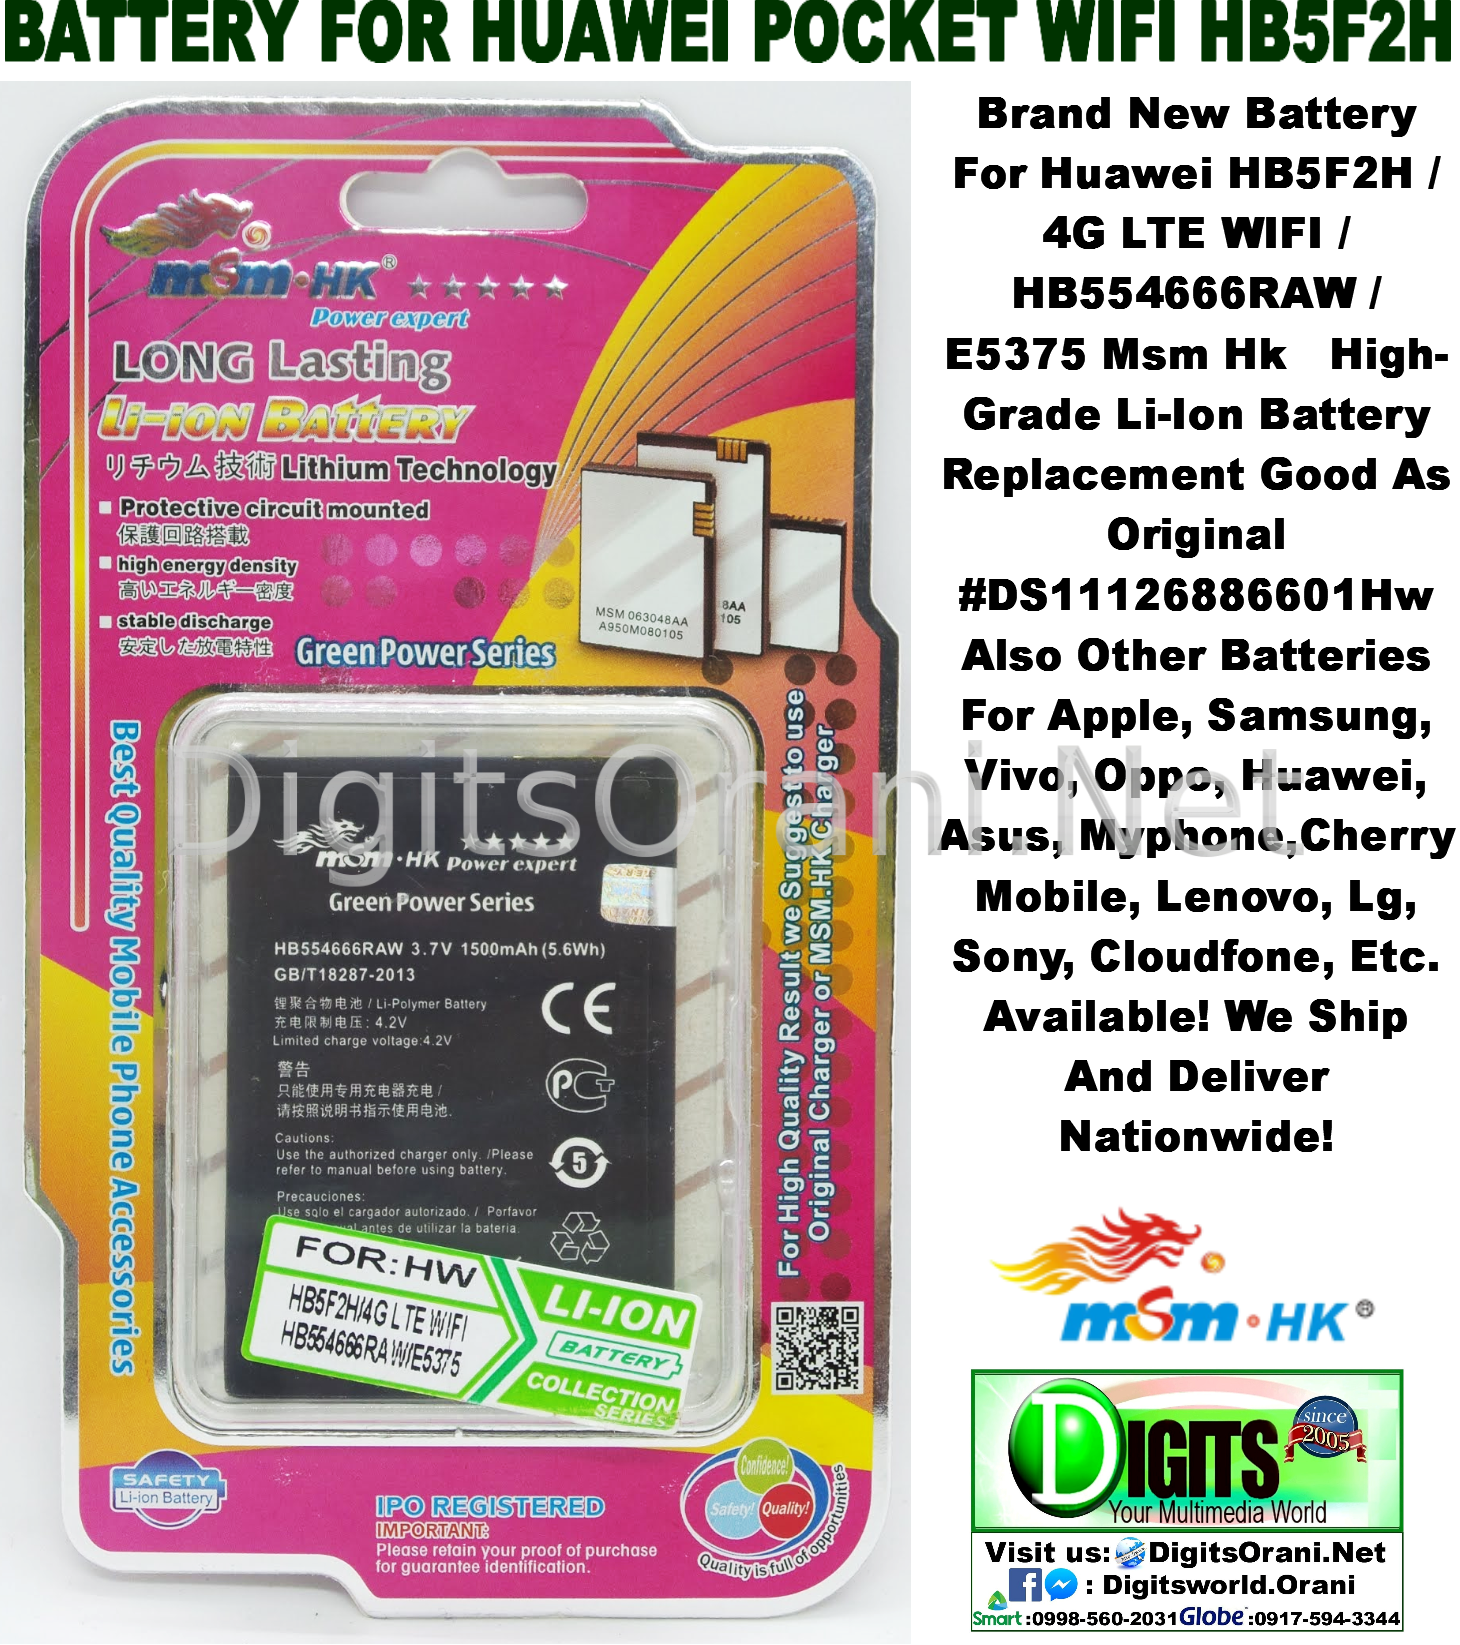 Pocket Wi-Fi Battery For Huawei Hb5A2H Msm Hk Hb5F2H Hb55 E5375 / U8110 /  U8500 / M750 / M228 High-Grade Li-Ion Battery Replacement Good As Original